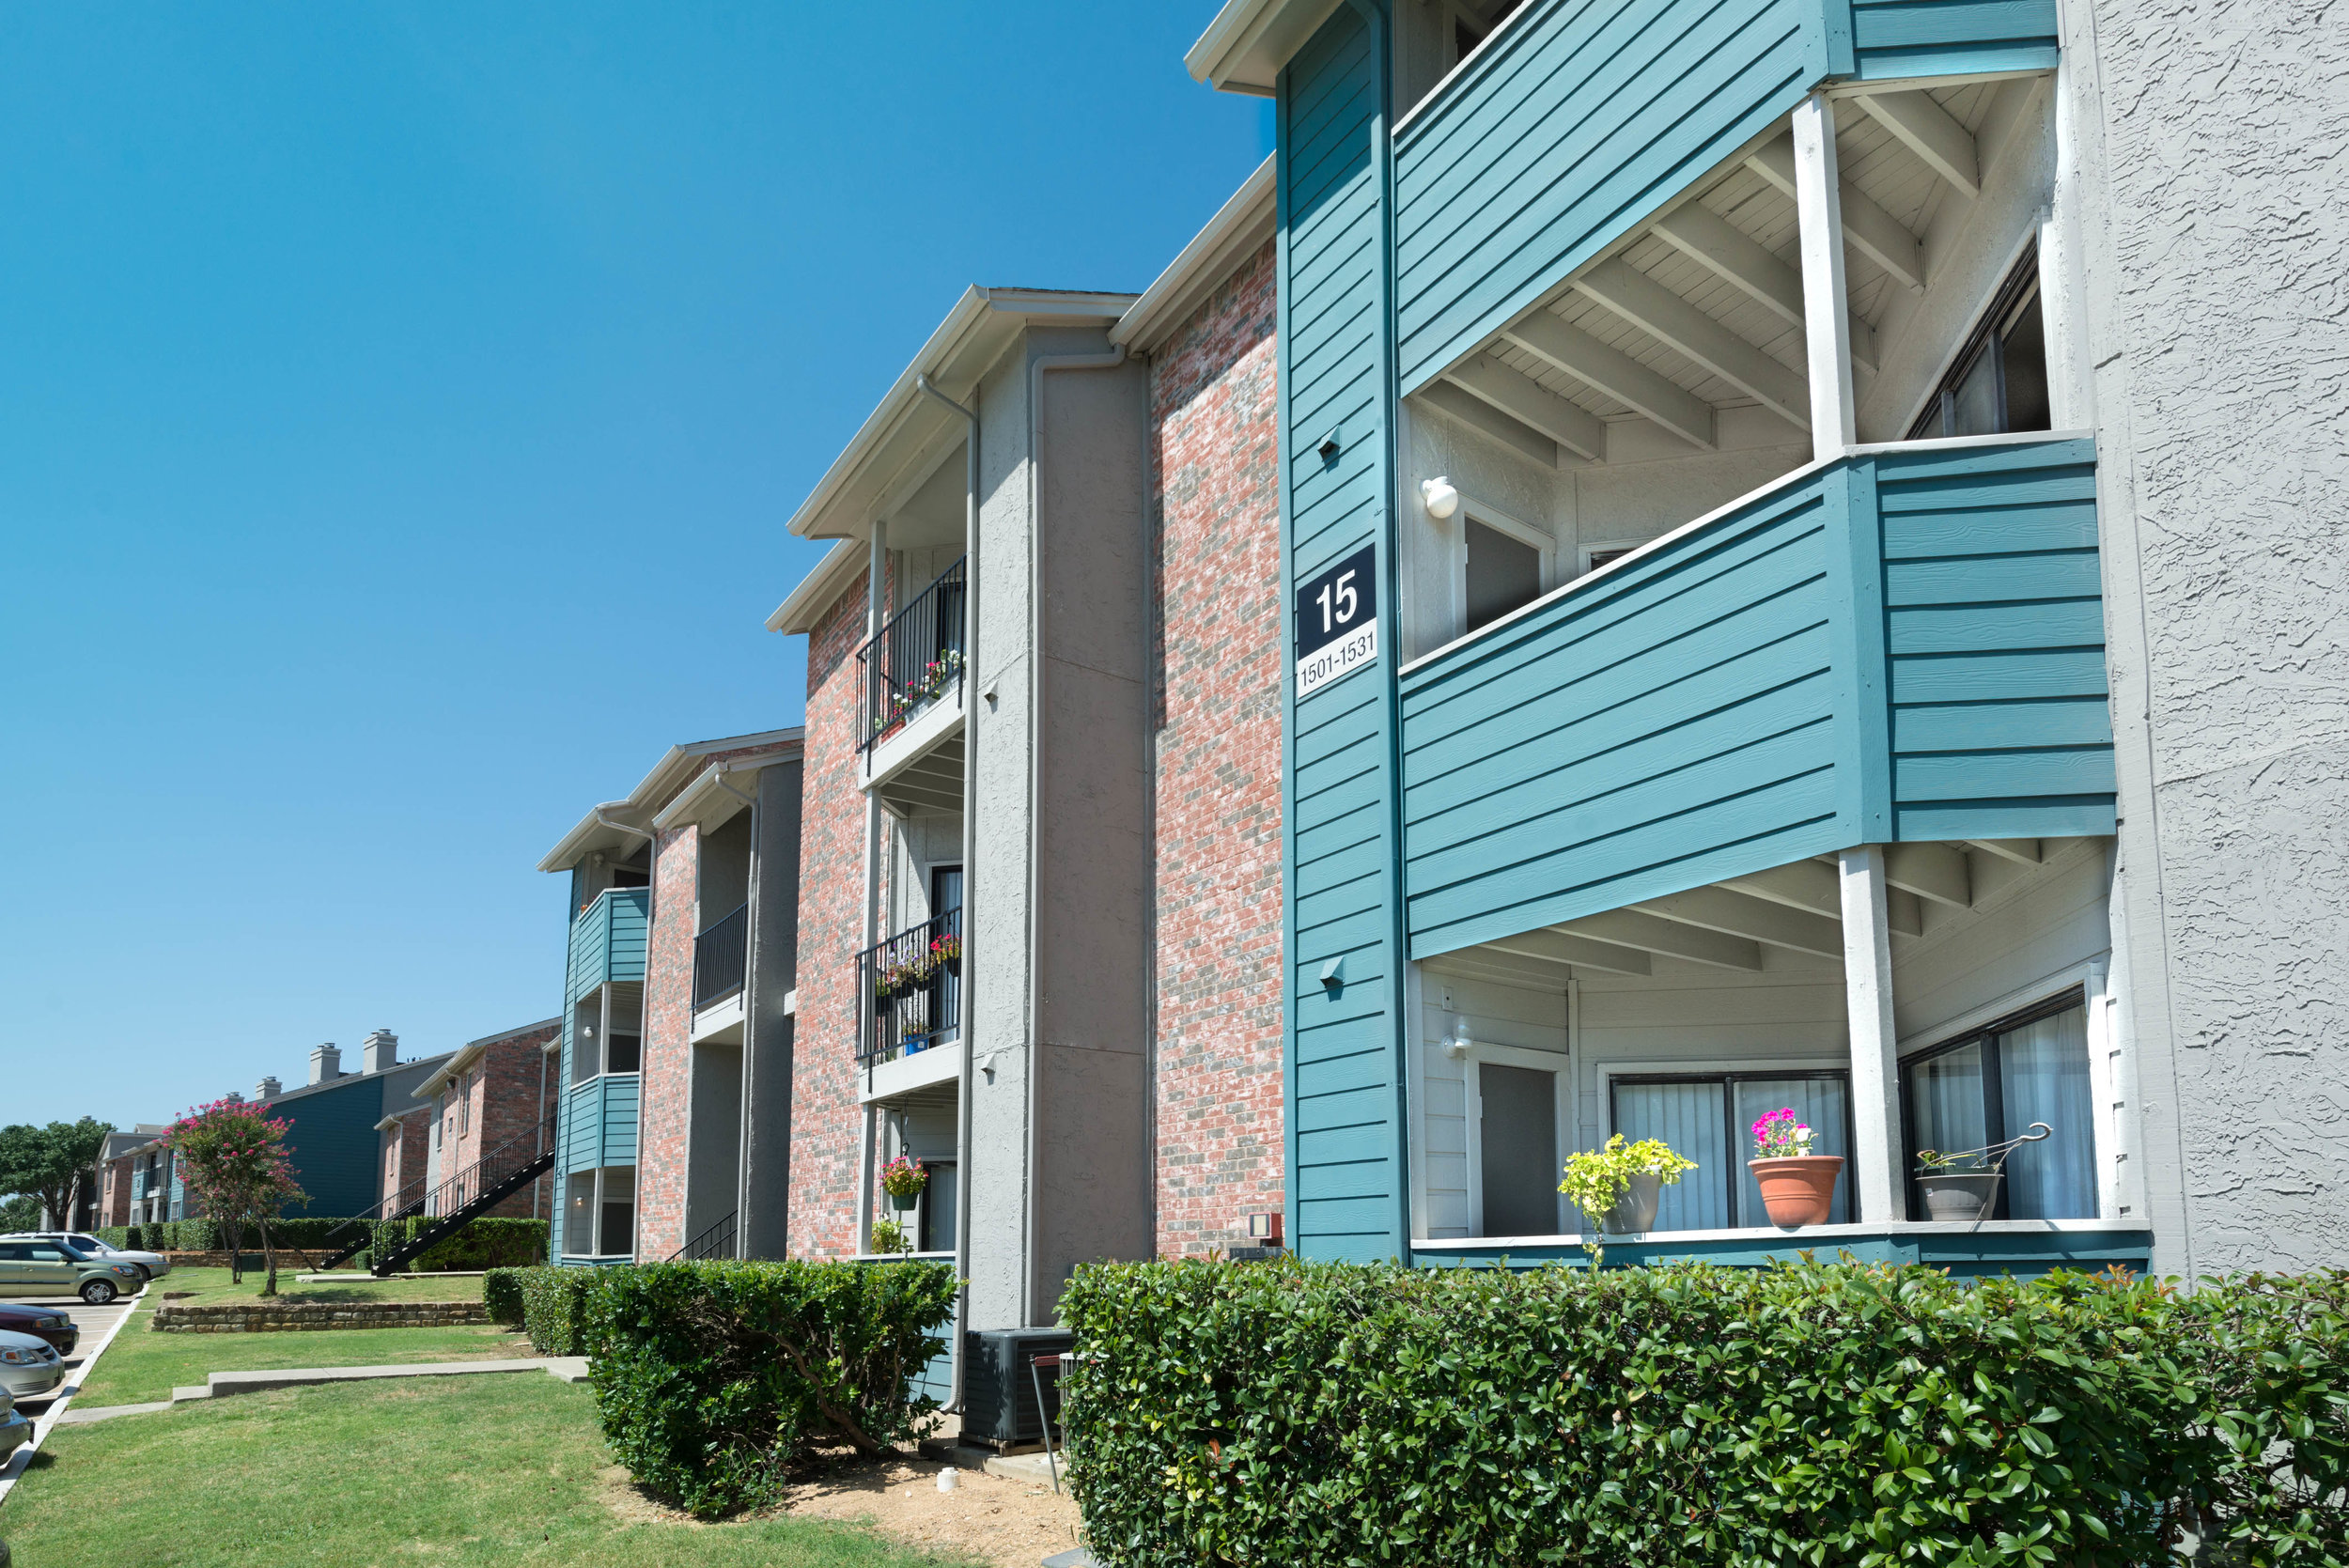 Modern Gem Design :: How to Select an Exterior Paint Scheme for Your Multifamily Property